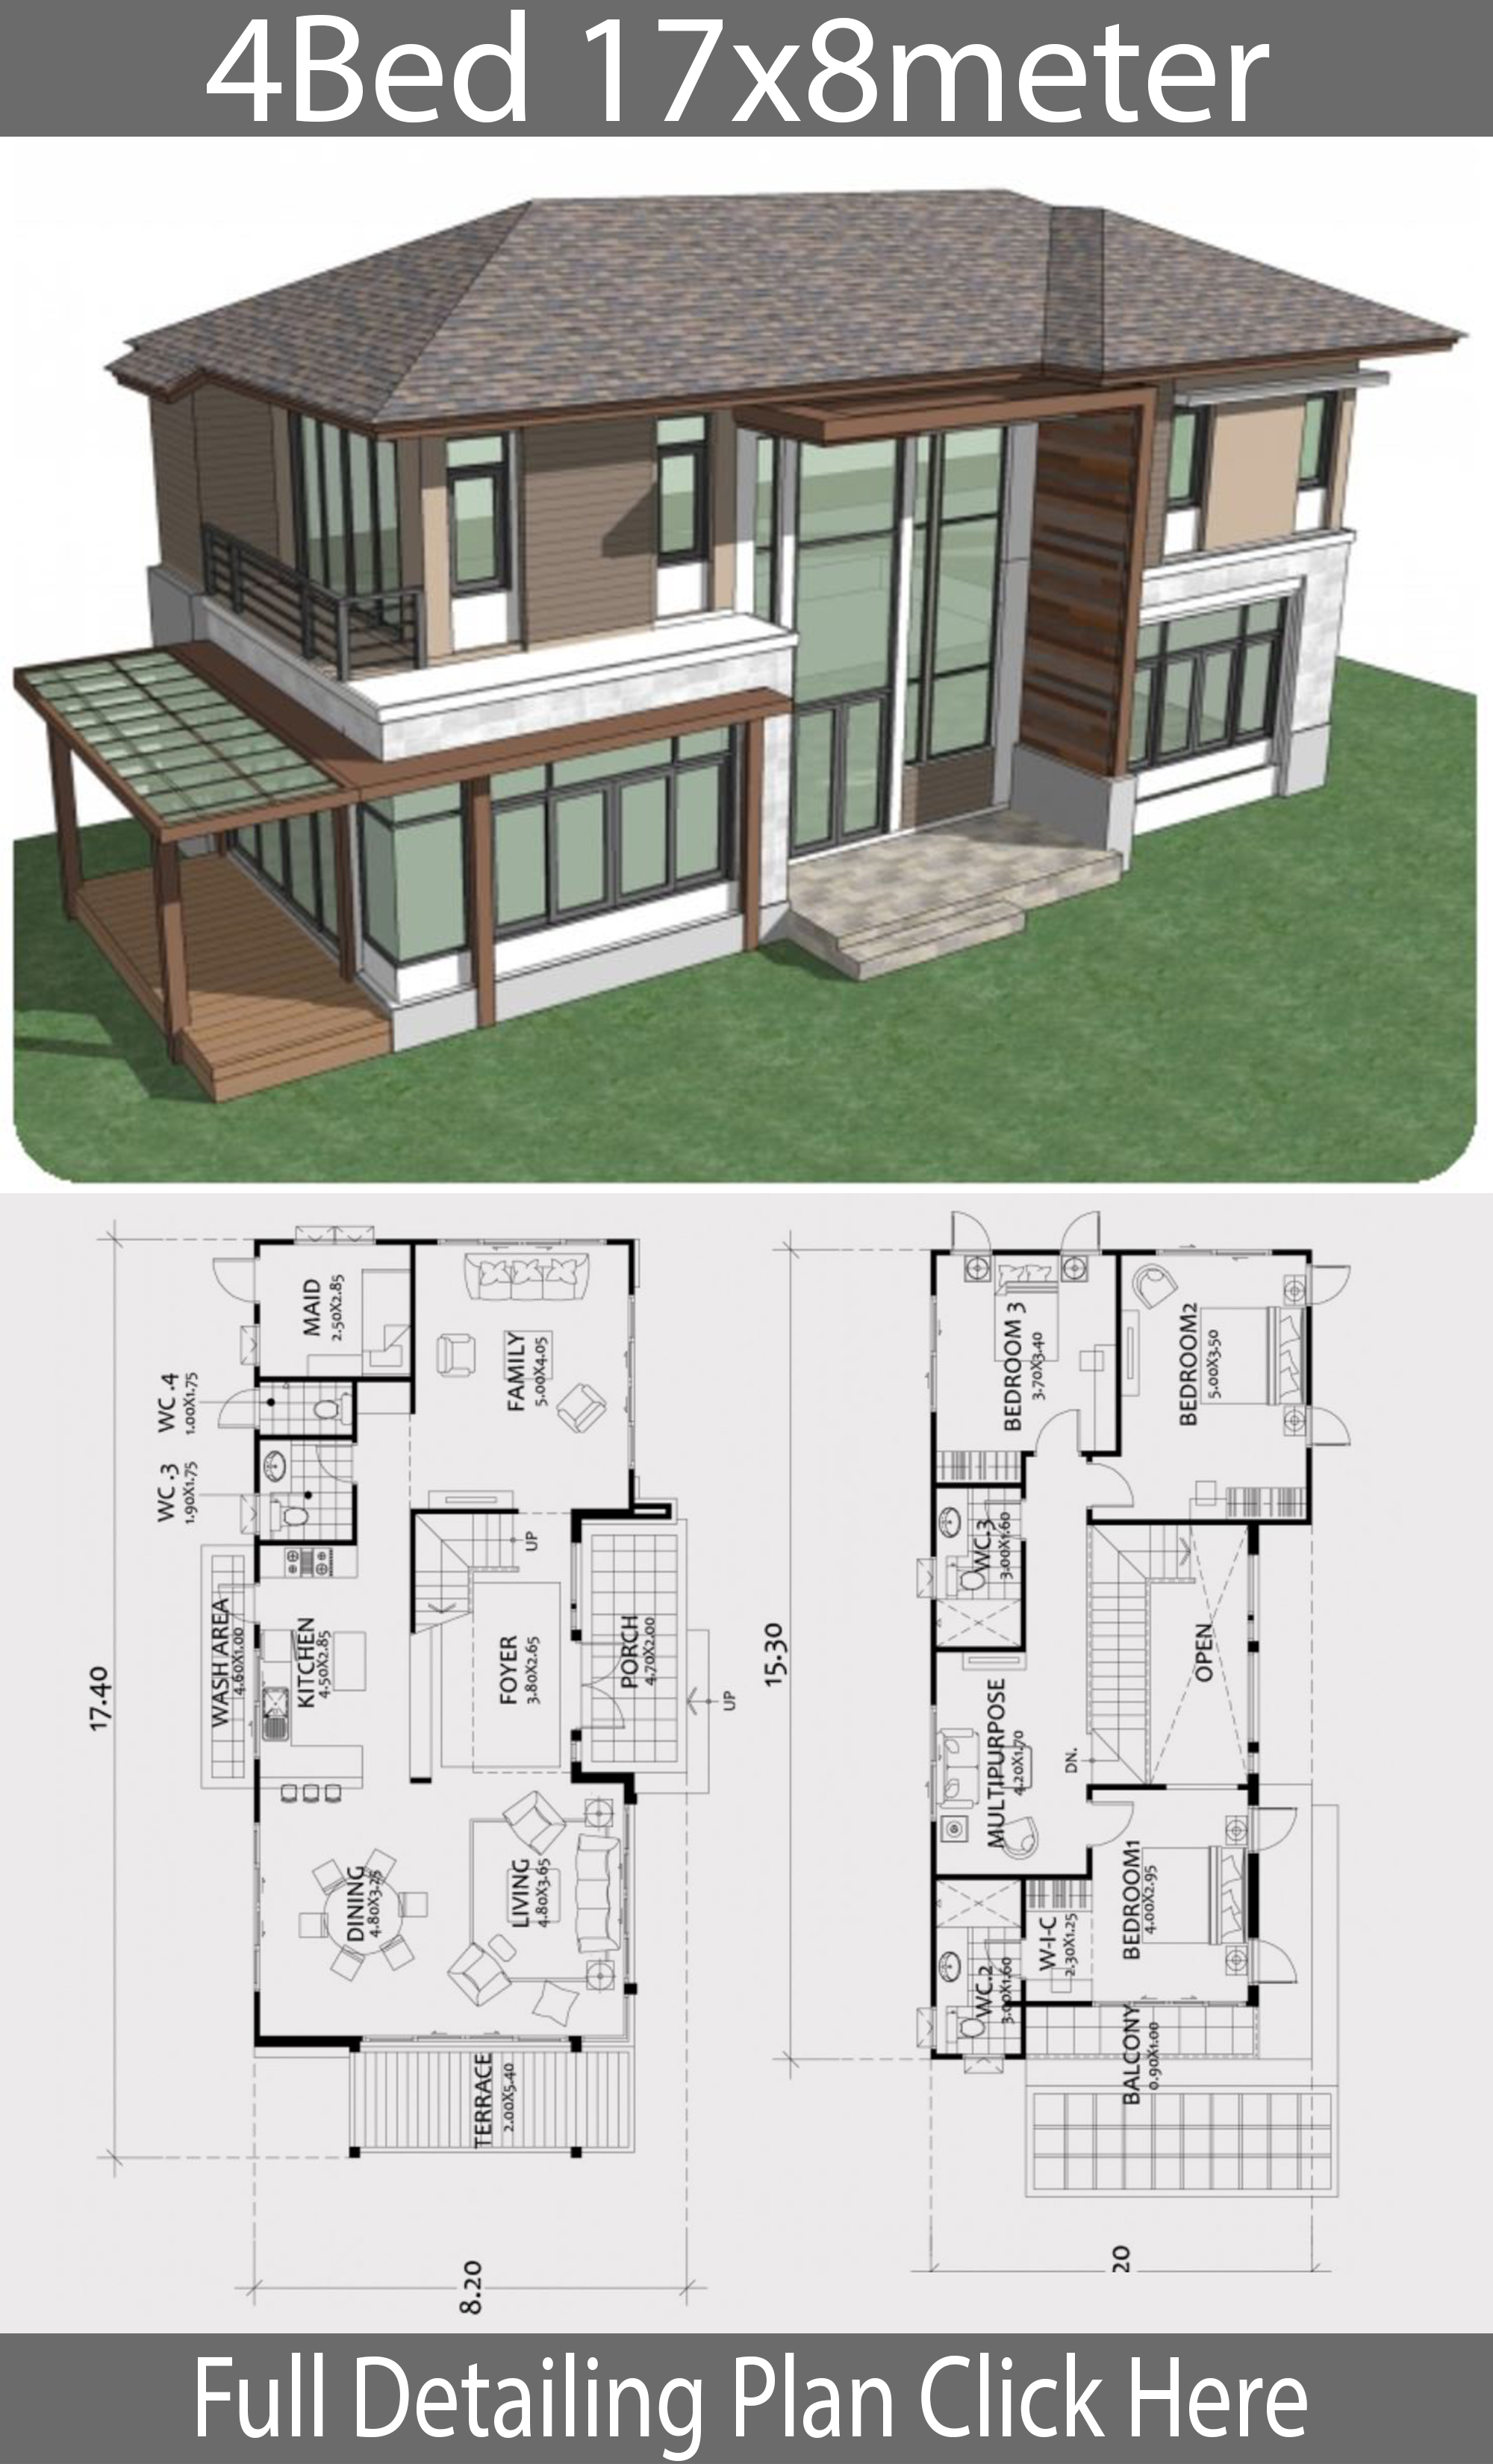 Home design plan 17x8m with 4 bedrooms - House Plans 3D